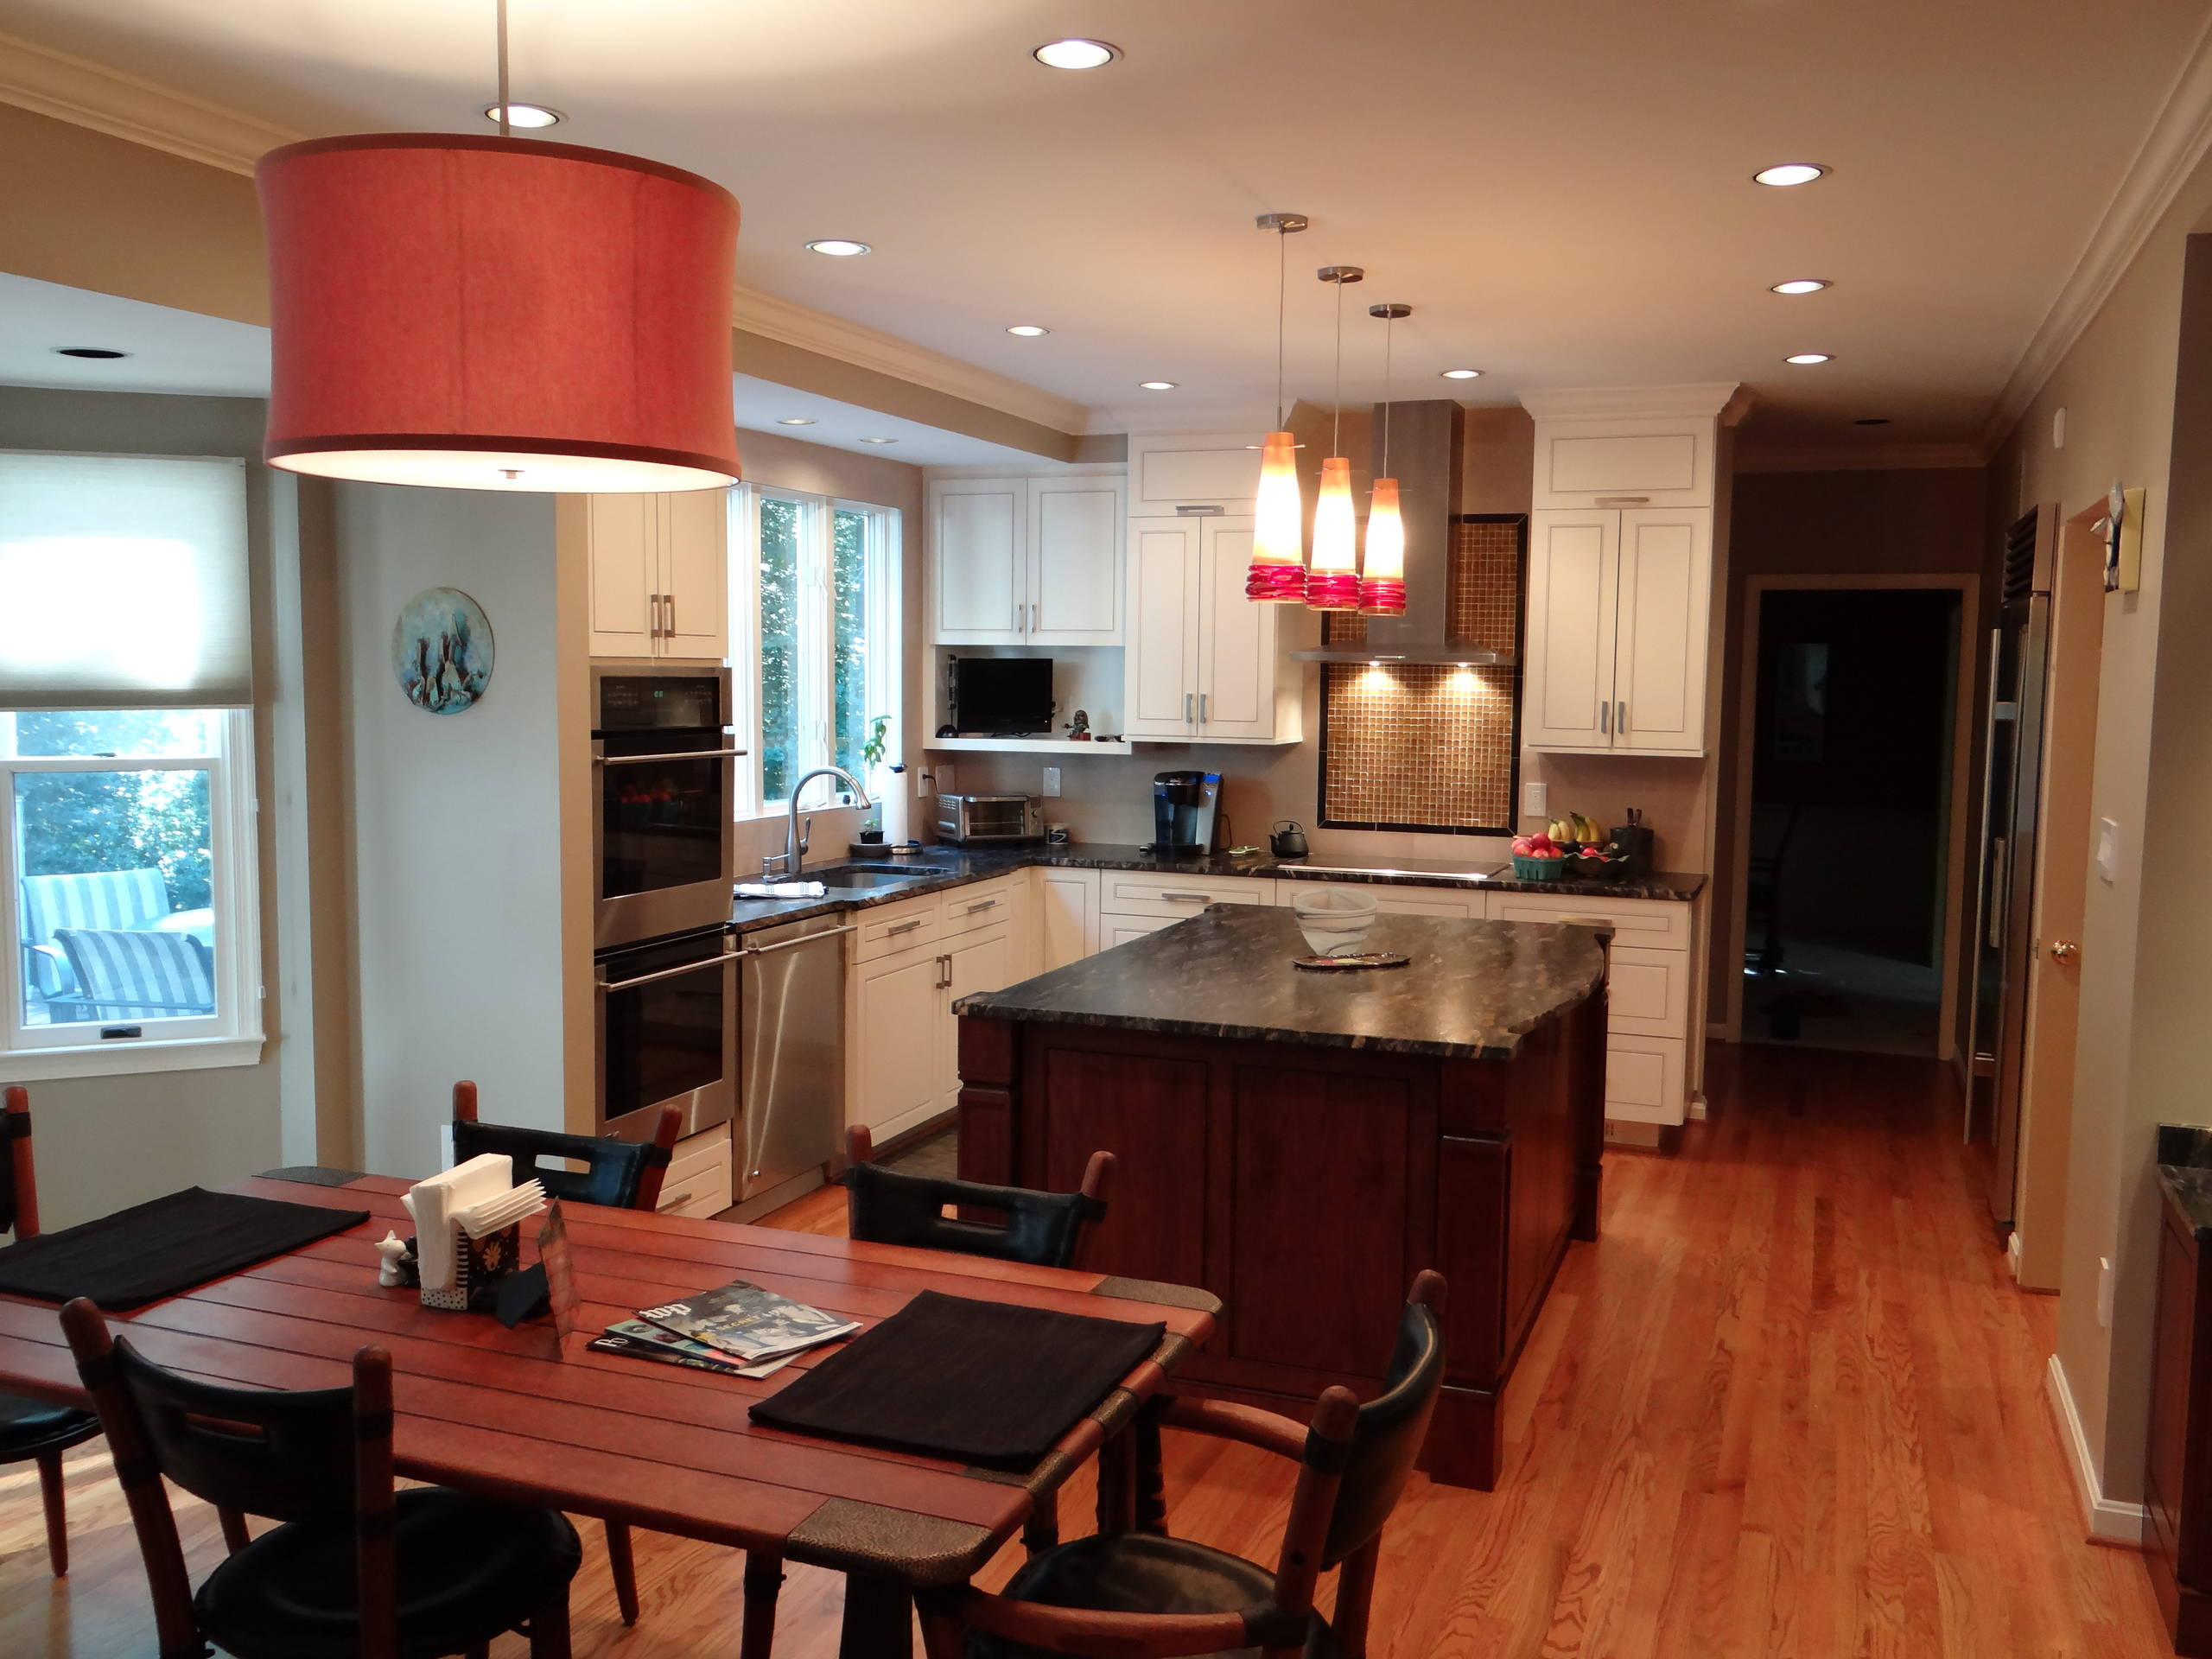 Fairfax Station Kitchen Remodel